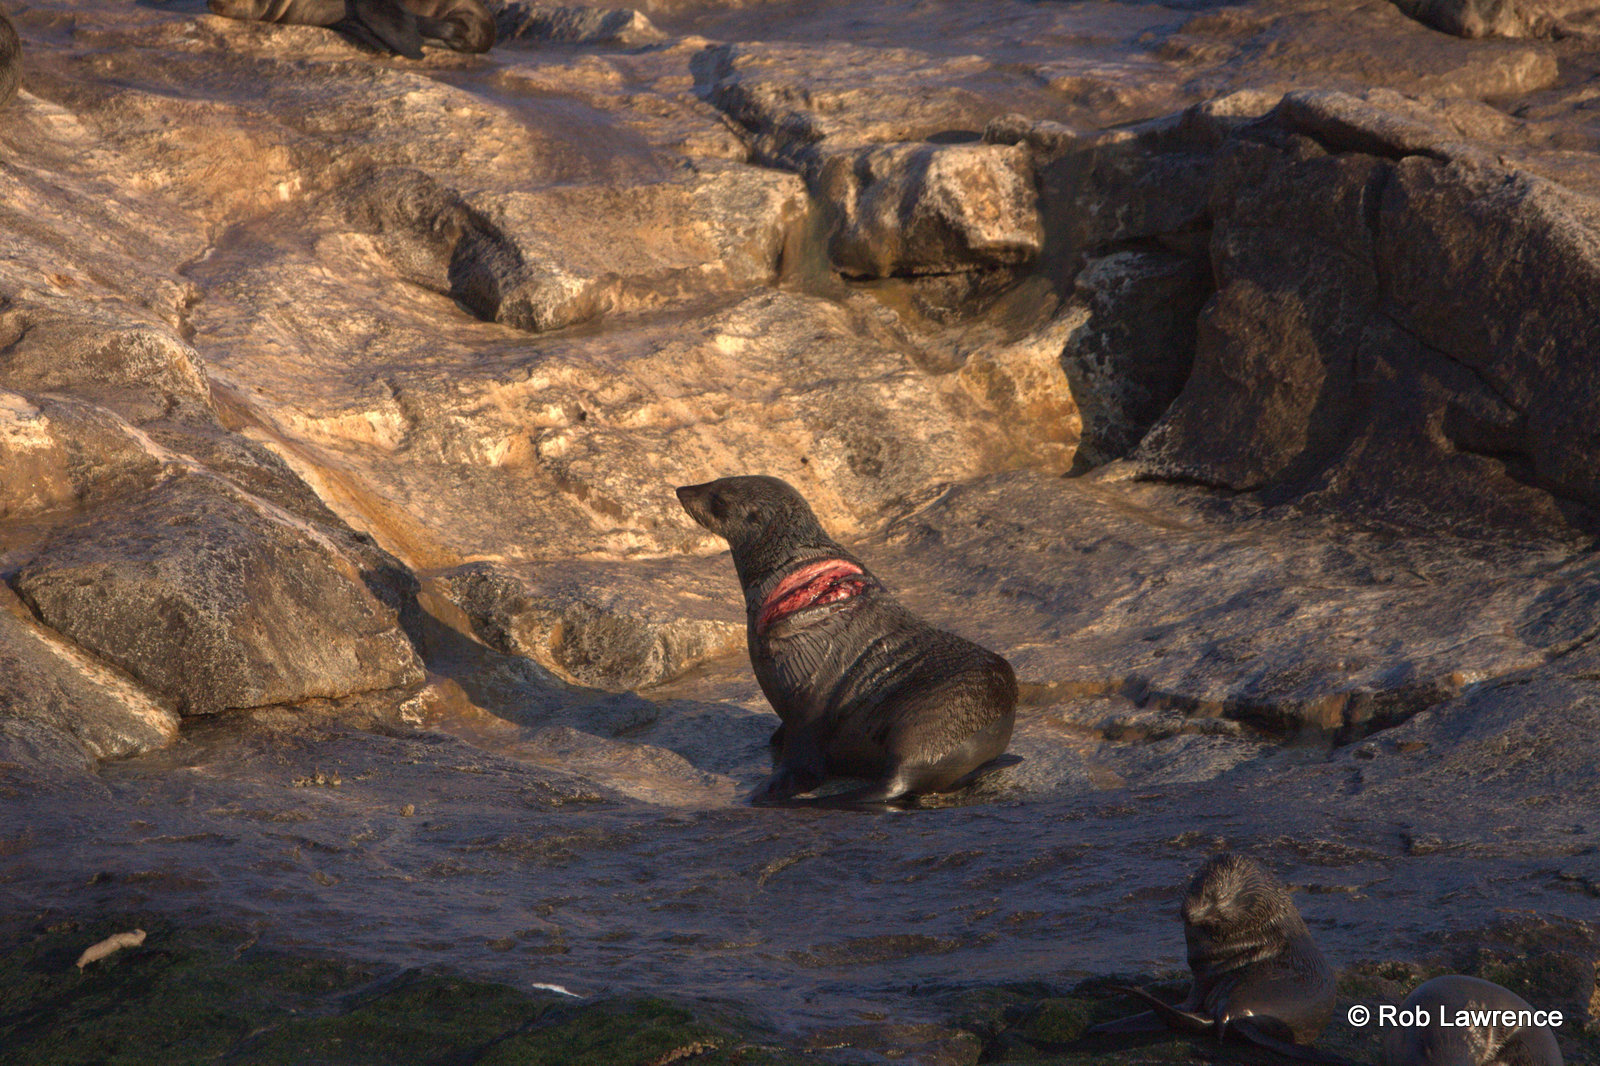 Lucky Cape Fur Seal escapes Great White Shark attack with effective anti-predatory strategies